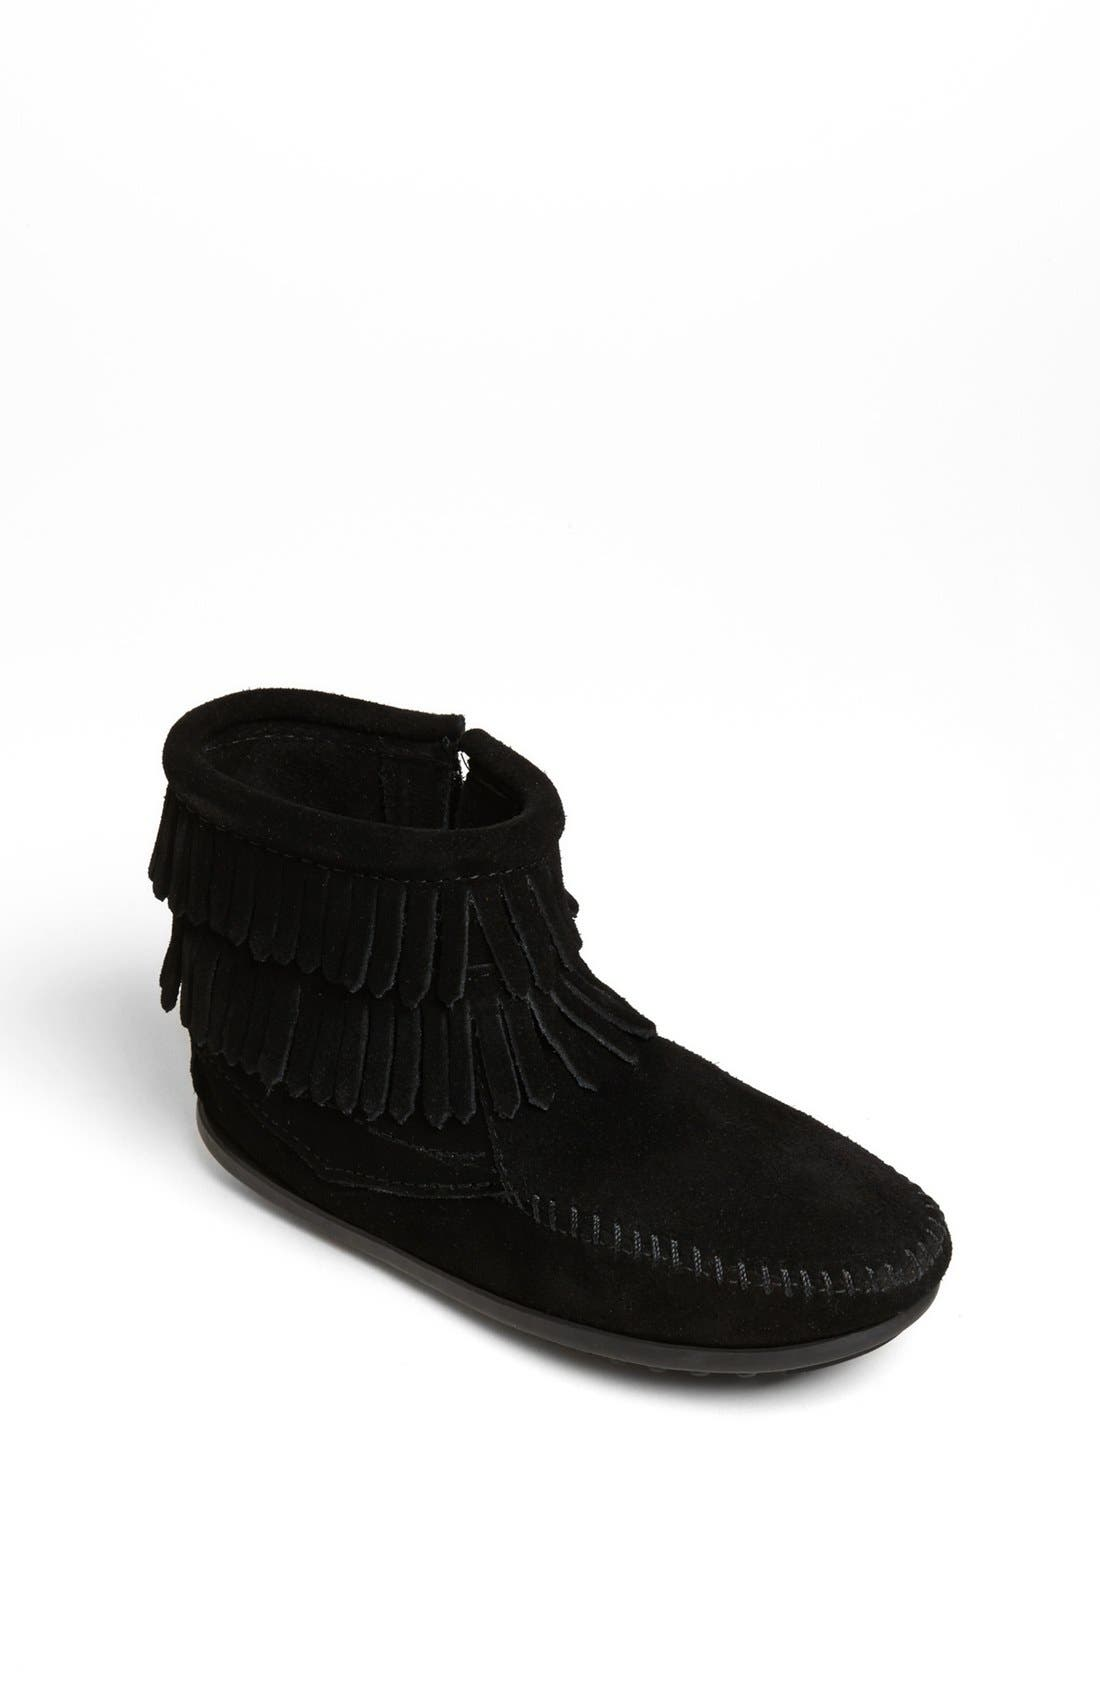 MINNETONKA 'Double Fringe' Boot, Main, color, BLACK